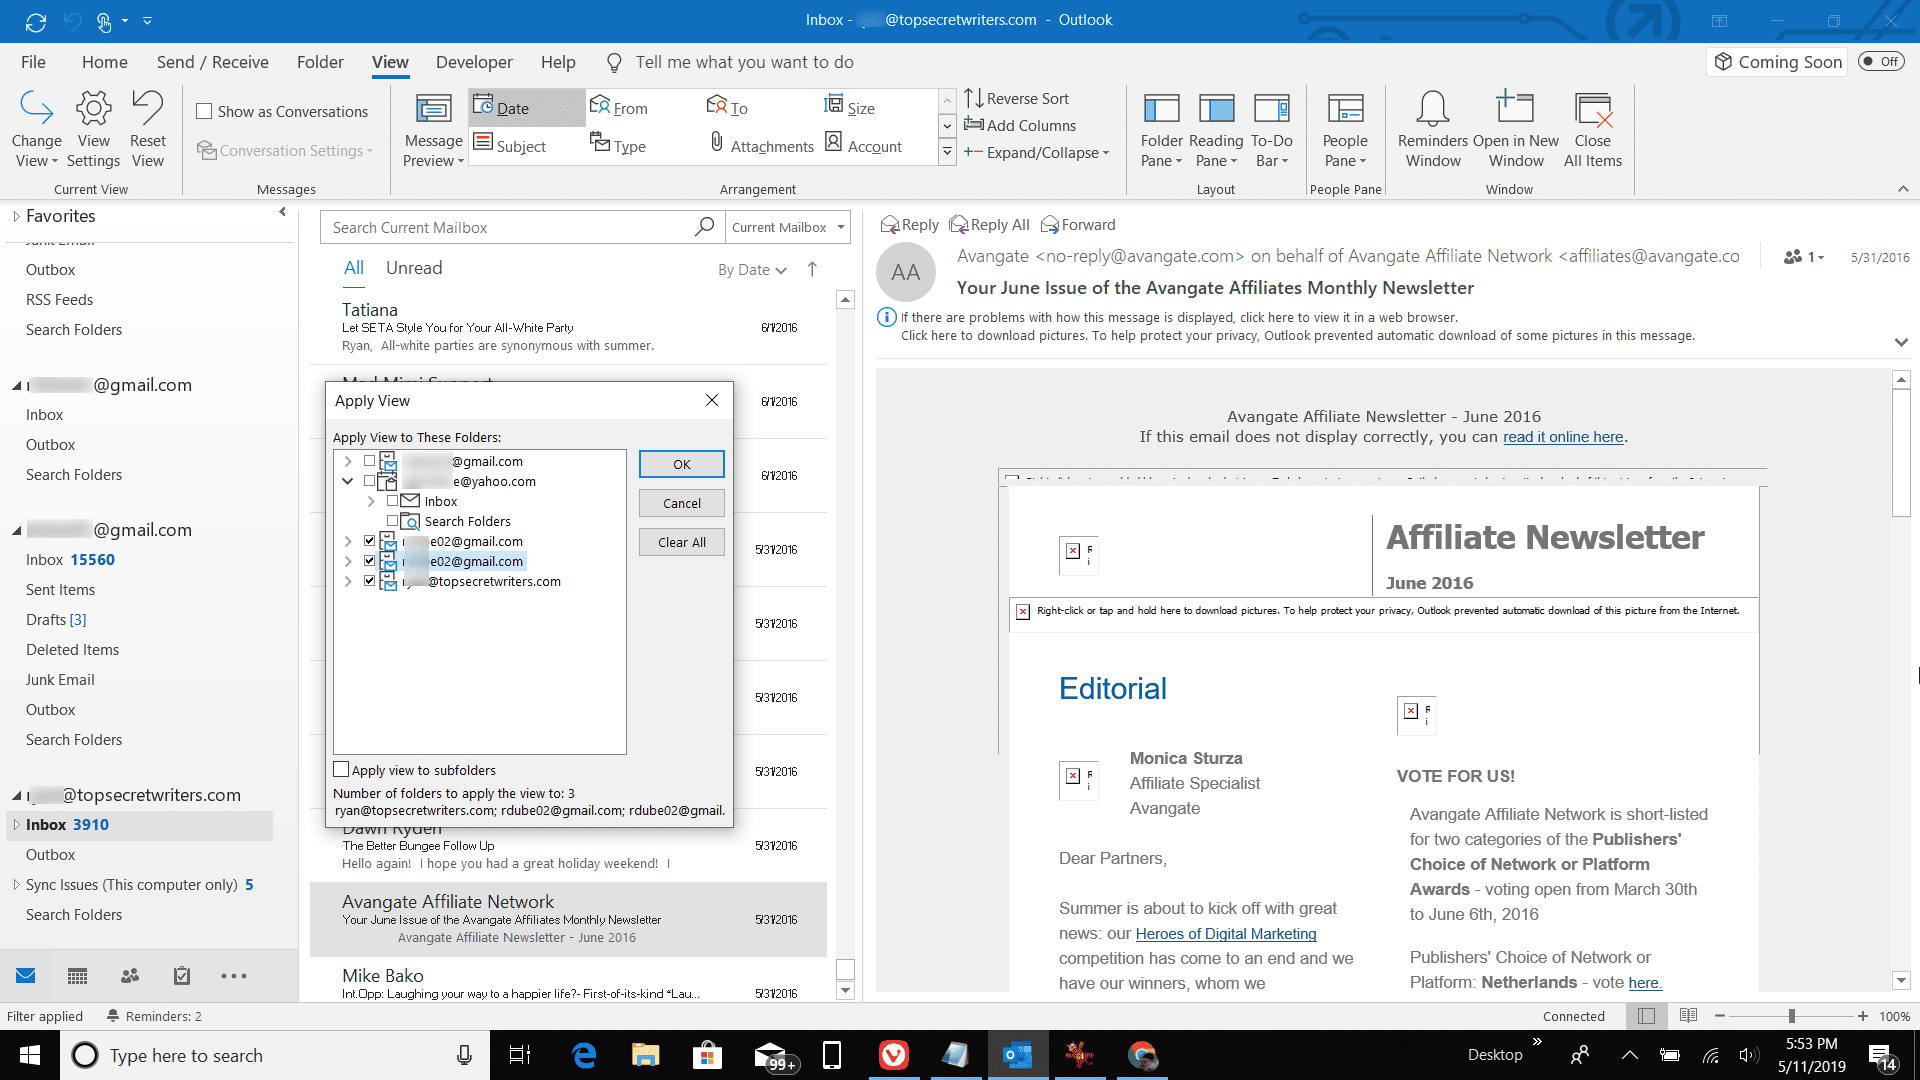 Screenshot of selecting folders to apply view in Outlook